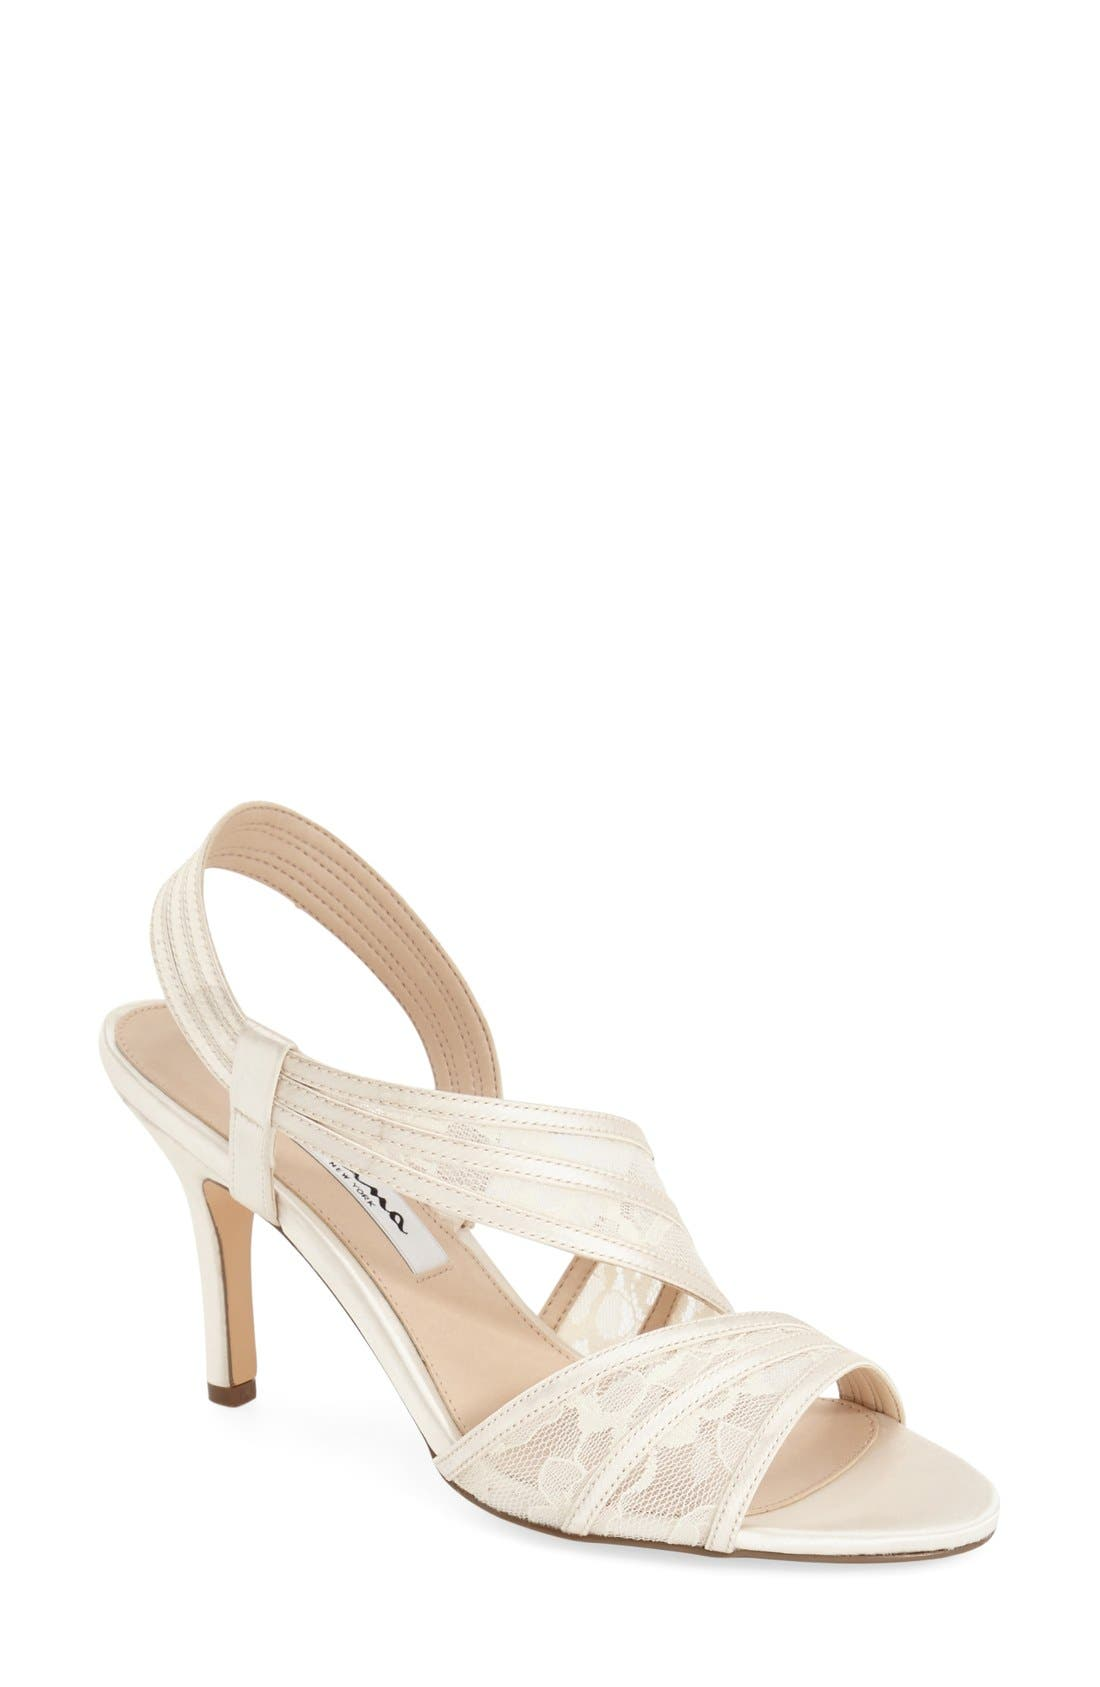 Alternate Image 1 Selected - Nina 'Vitalia' Sandal (Women)